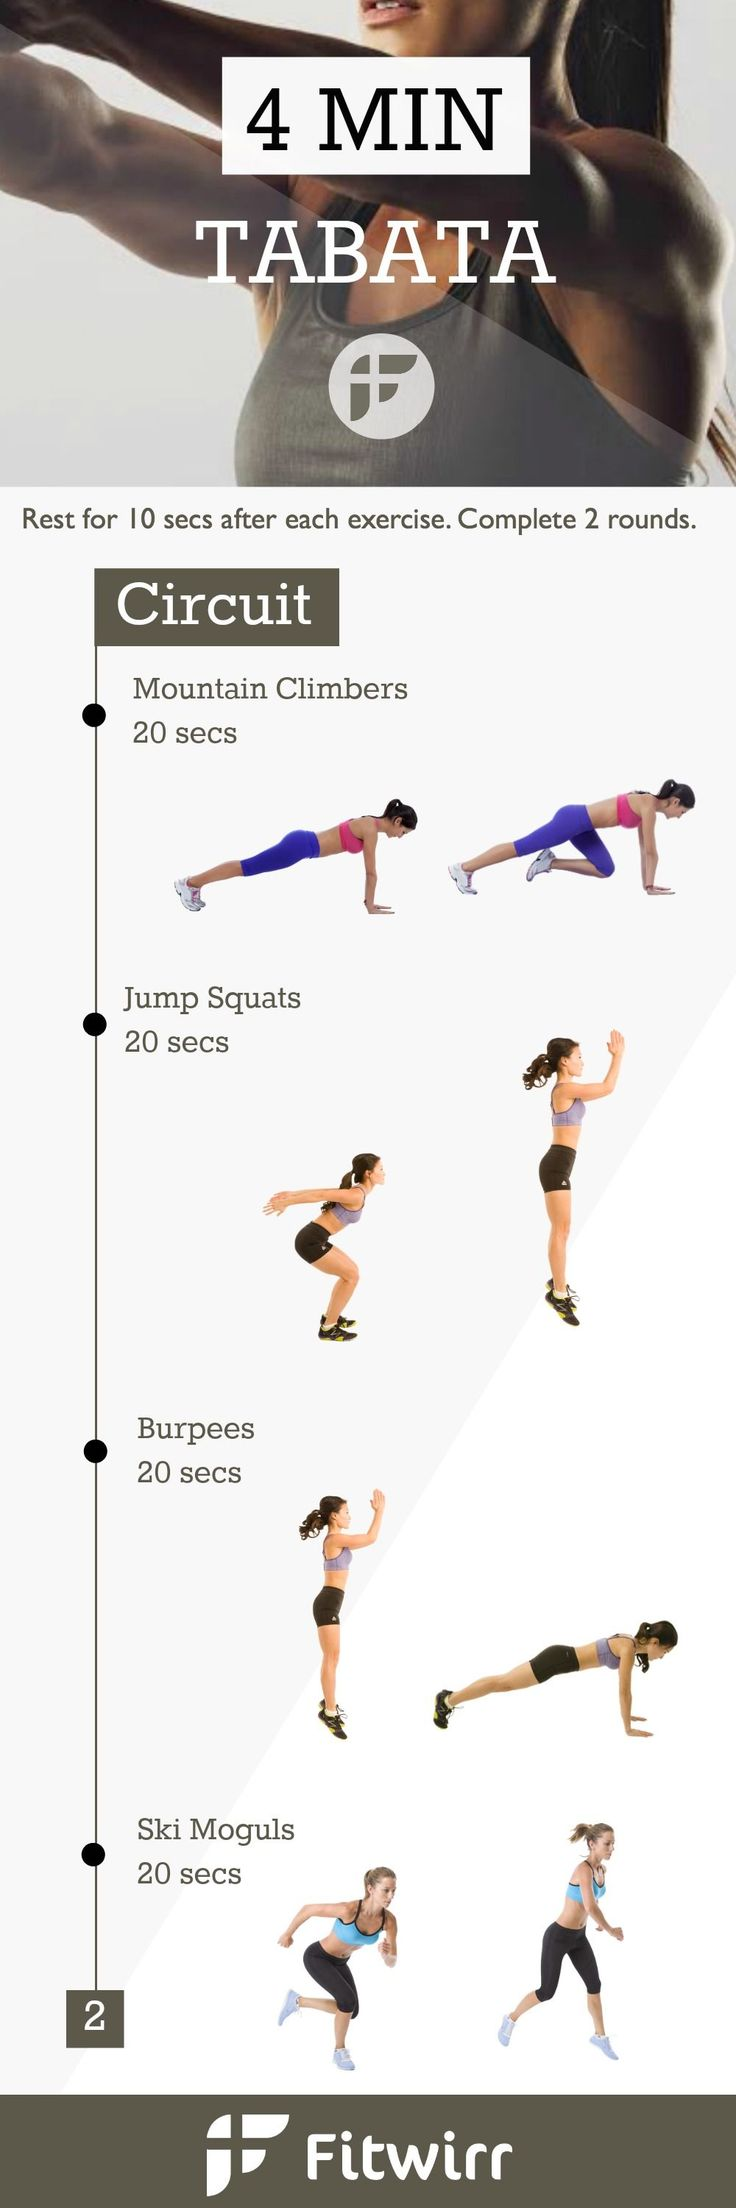 Tabata Workout for Maximum Fat Burning - There is no need to do 1 hour of cardio just to burn a few hundreds of calories. With Tabata workouts, you can burn just as much calories in 4 mins.